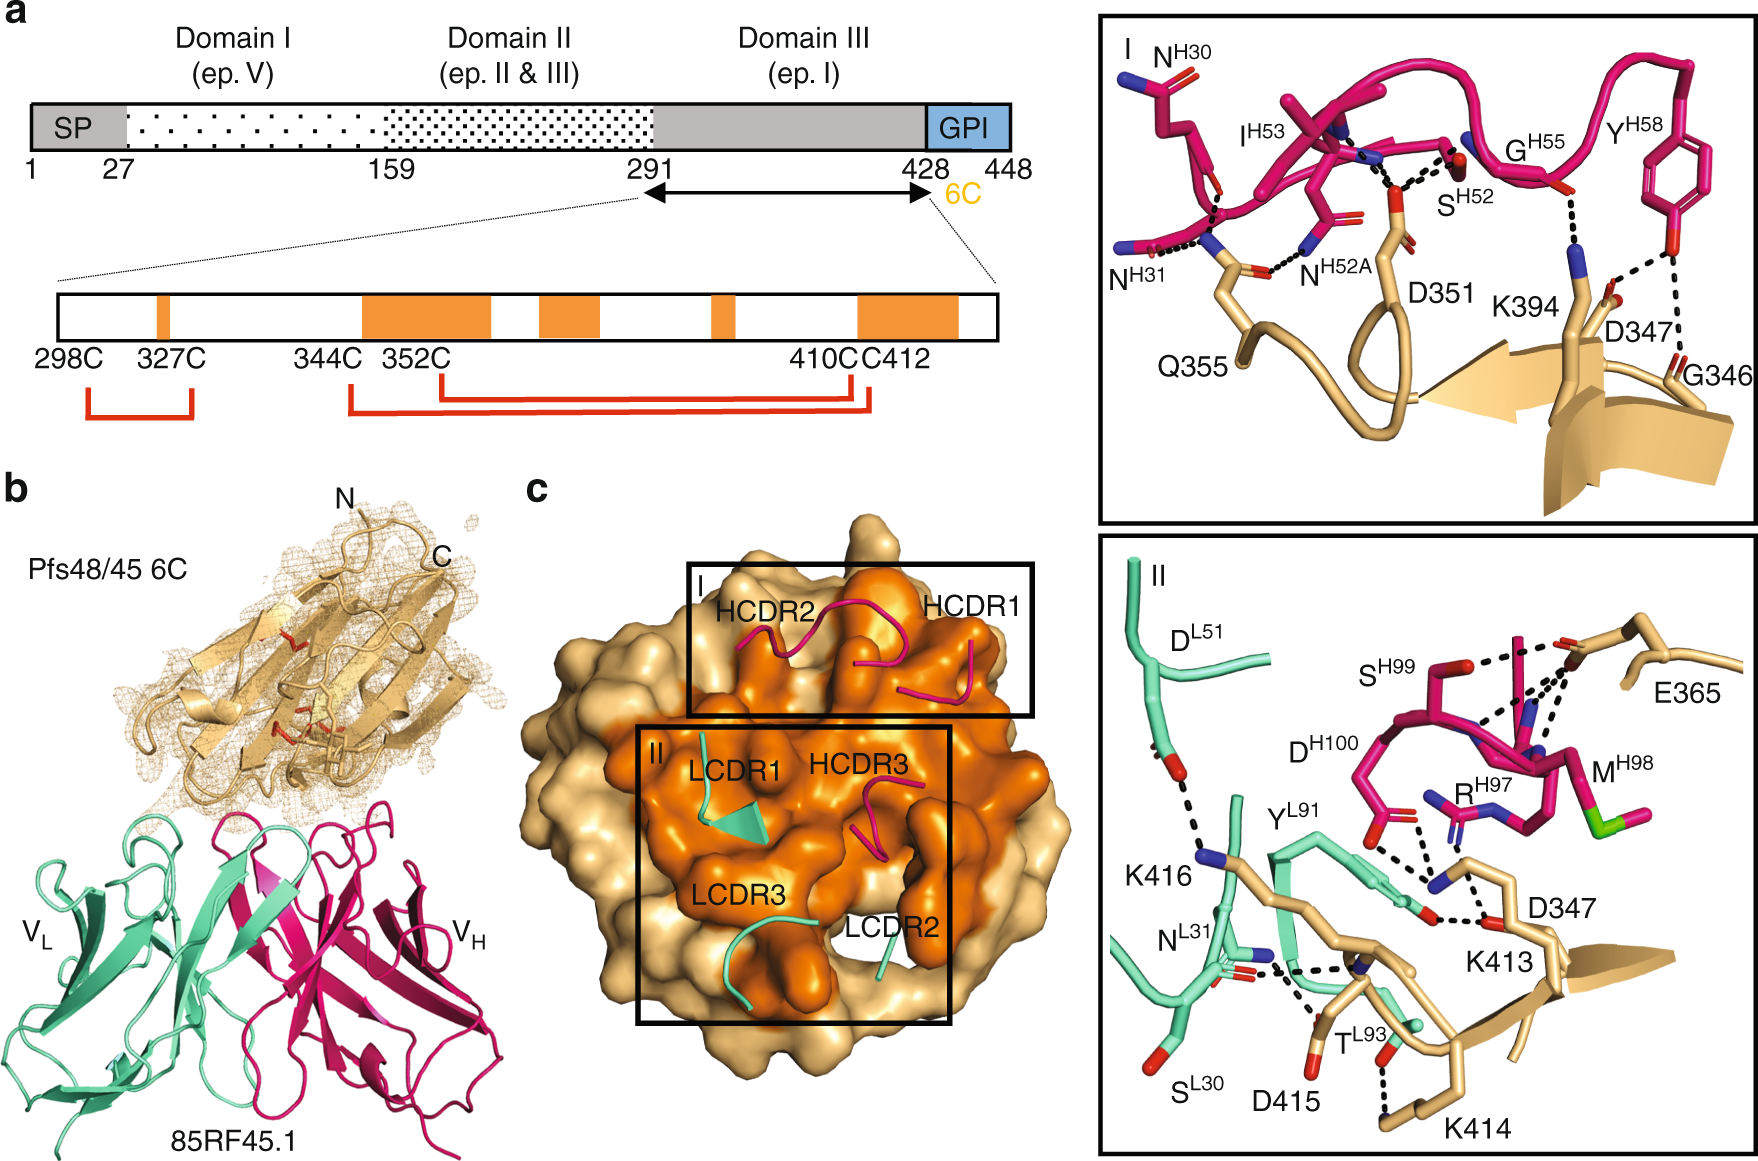 Structural Delineation Of Potent Transmission Blocking Epitope I On Malaria Antigen Pfs48 45